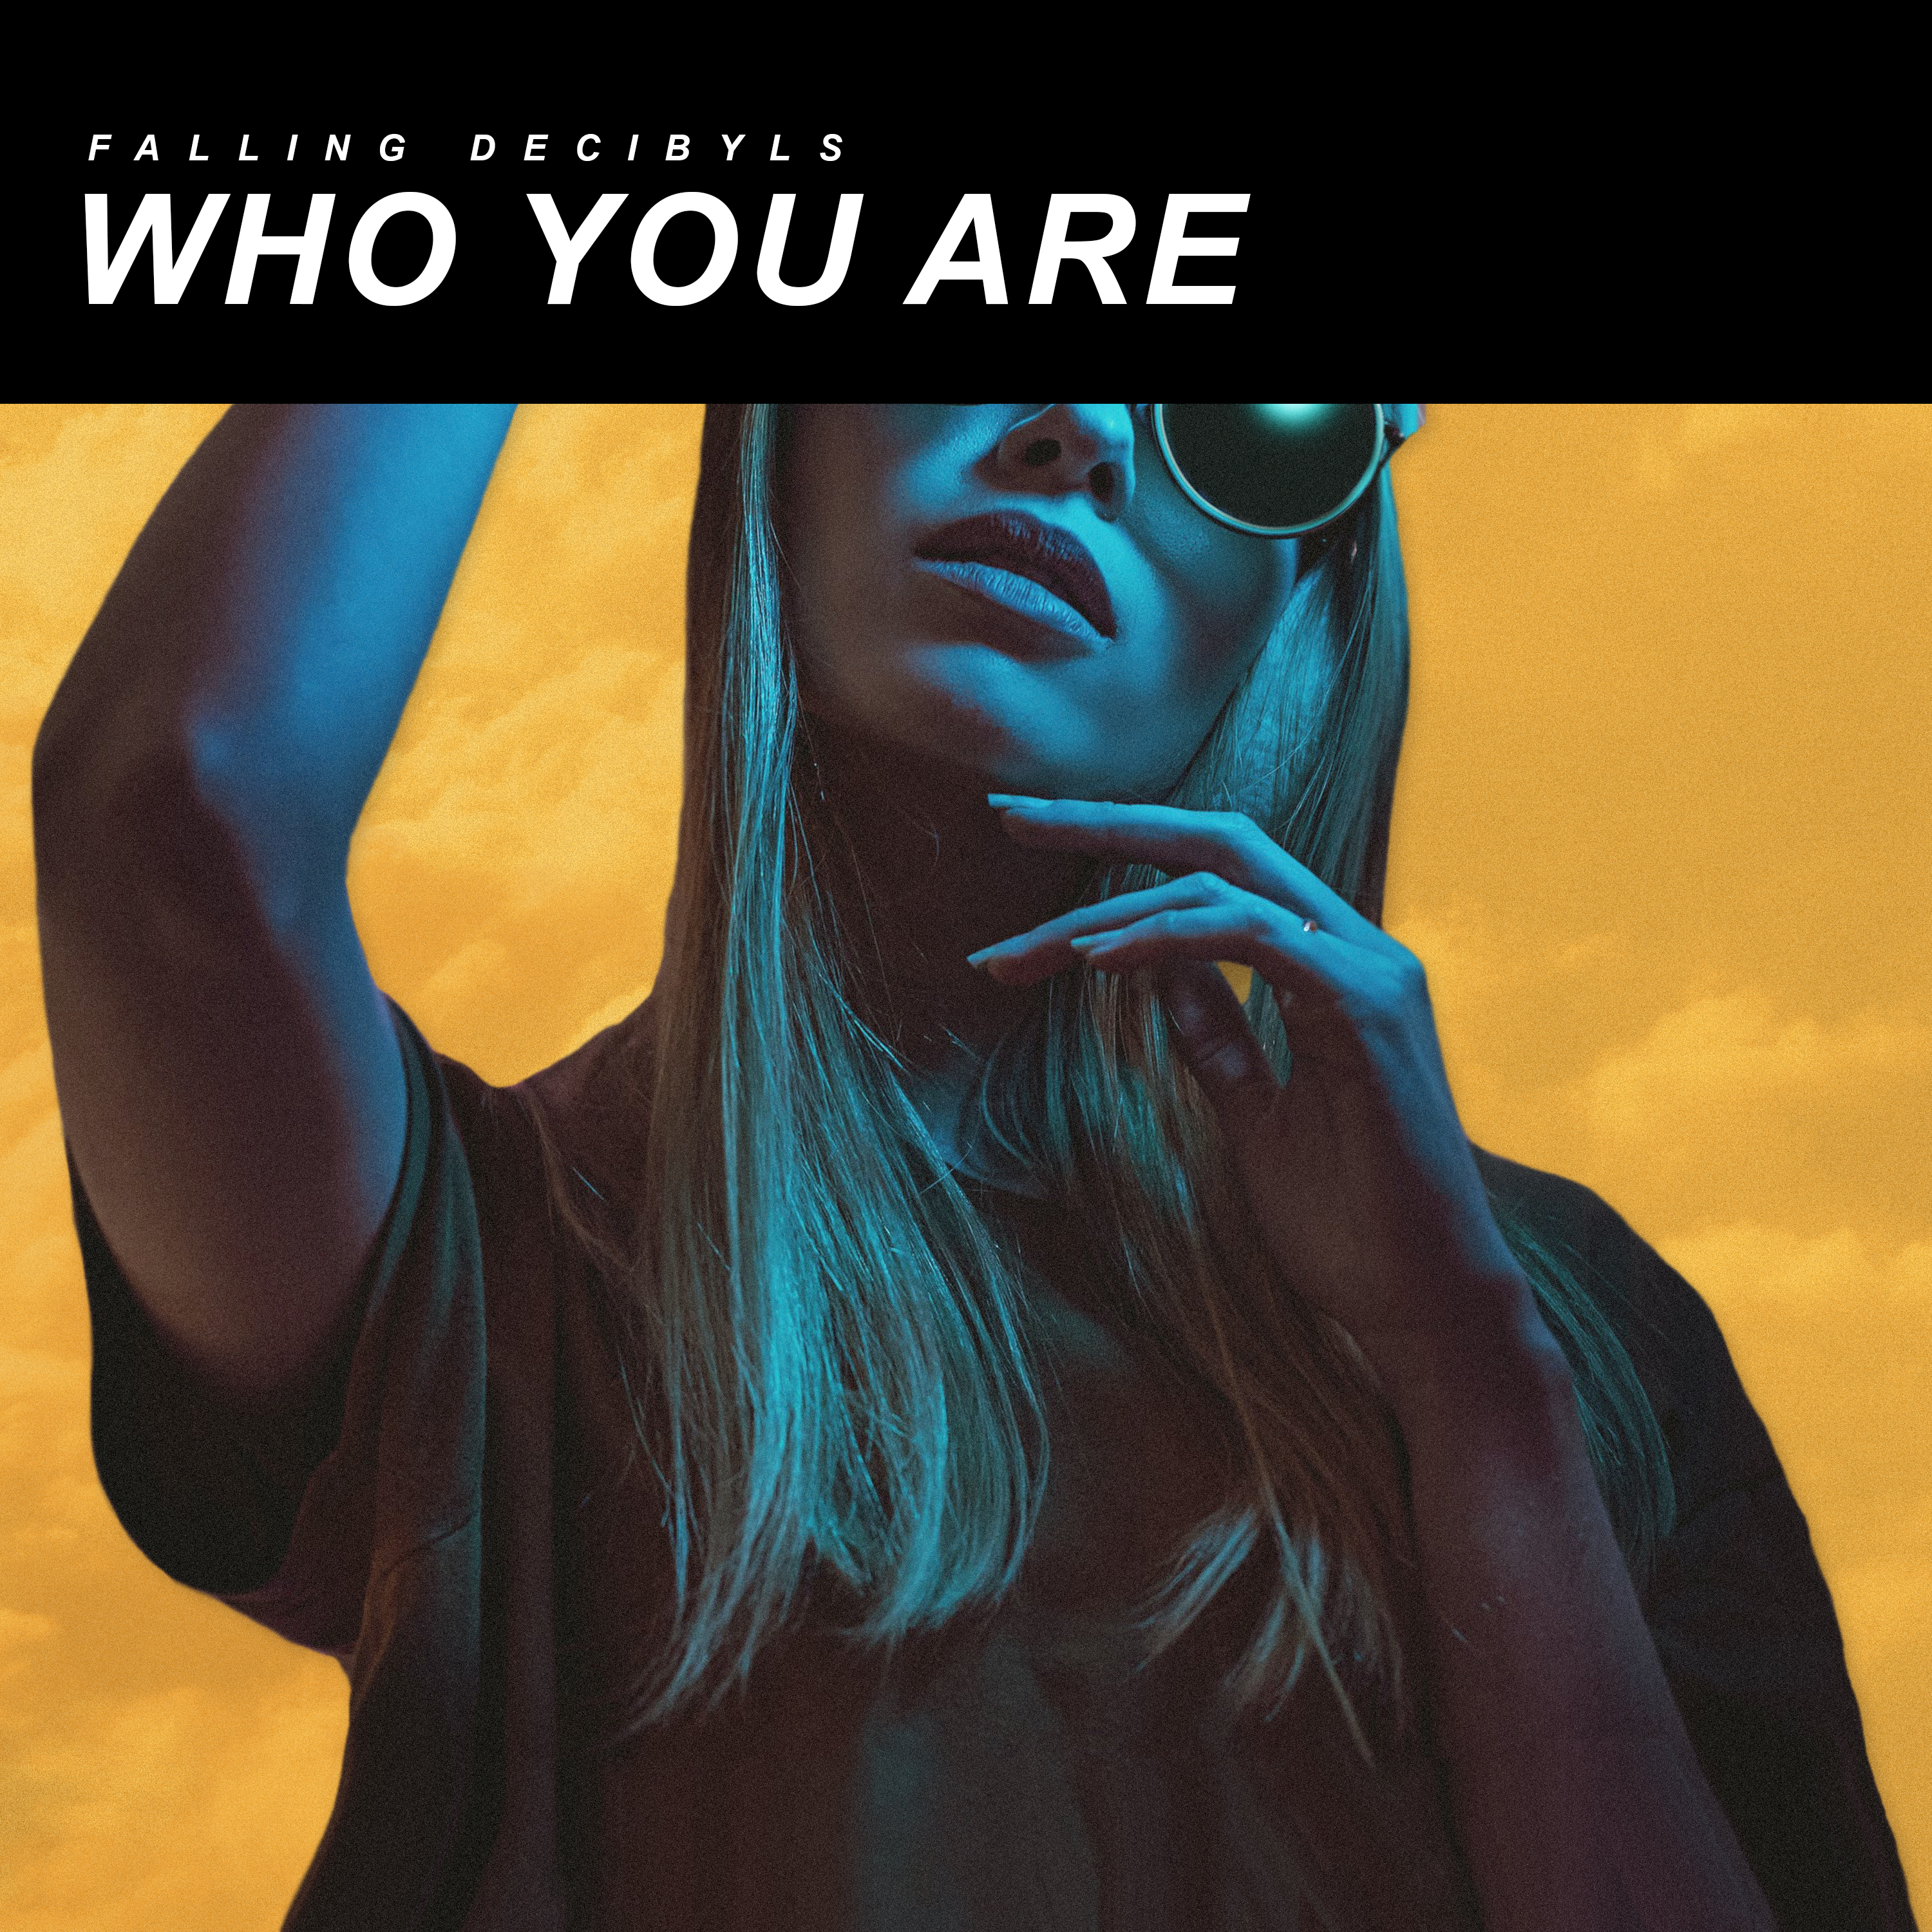 Who You Are Image